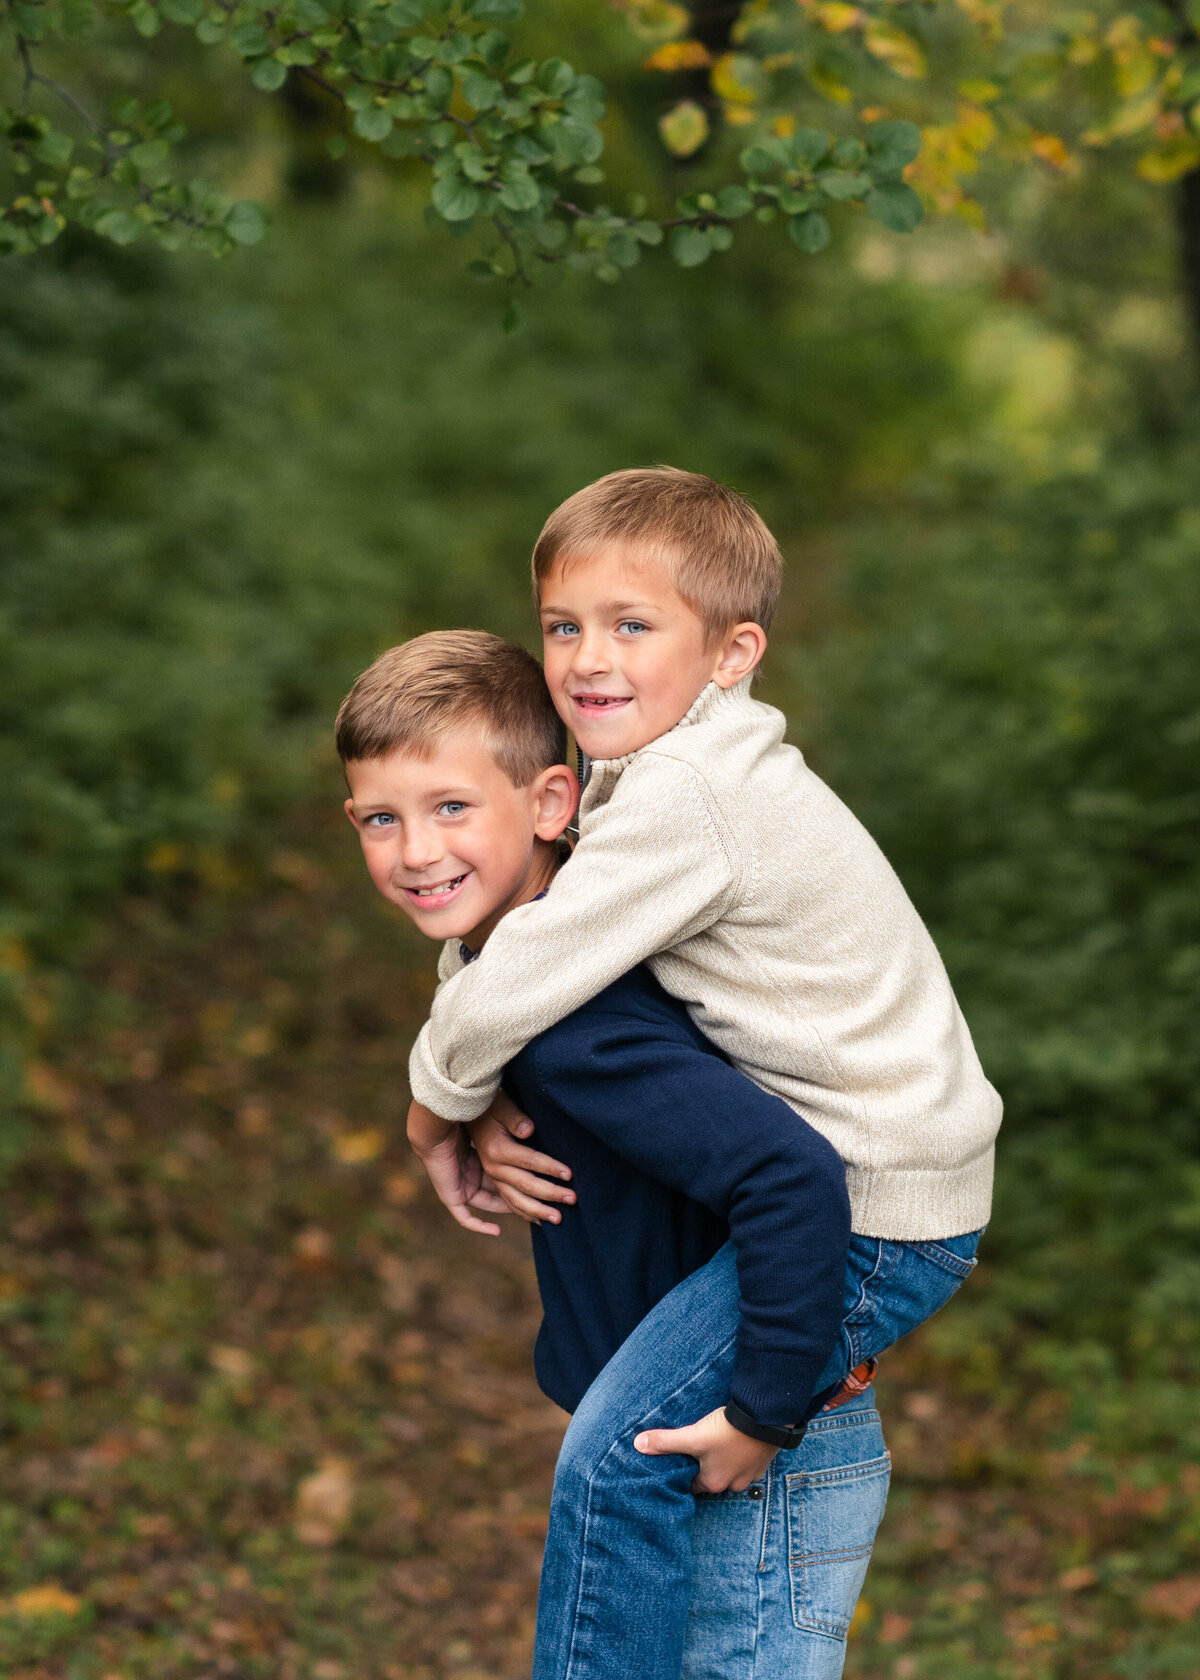 Des-Moines-Iowa-Family-Photographer-Theresa-Schumacher-Photography-Fall-Park-Brothers